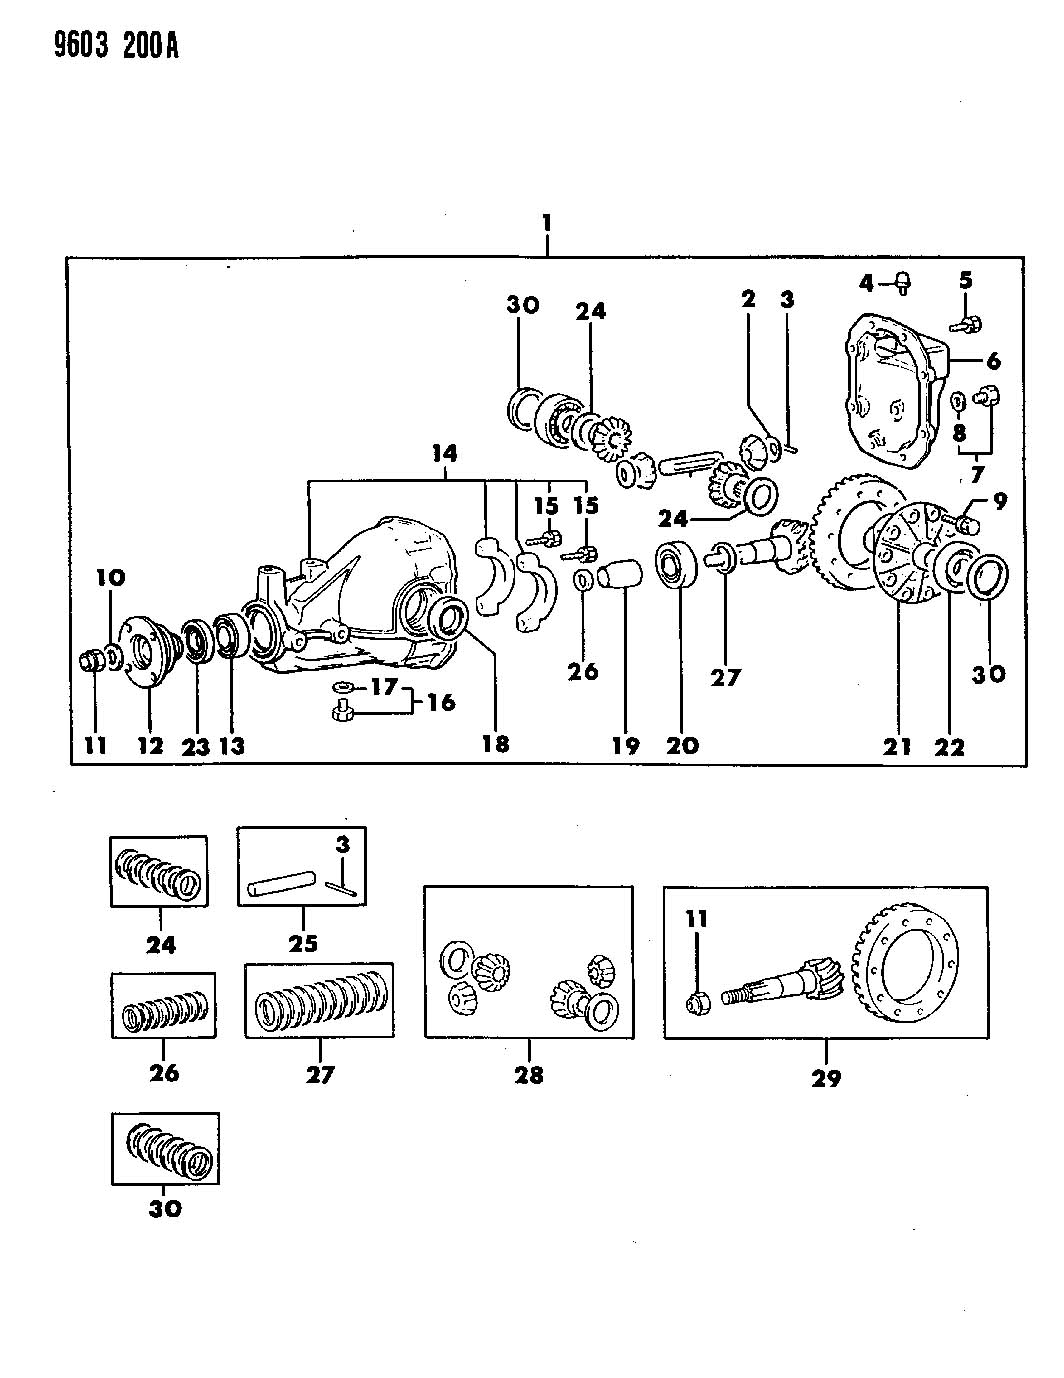 Wiring Diagram 1990 Eagle Talon Schematics Diagrams Turbo Engine Imageresizertool Com Car 1996